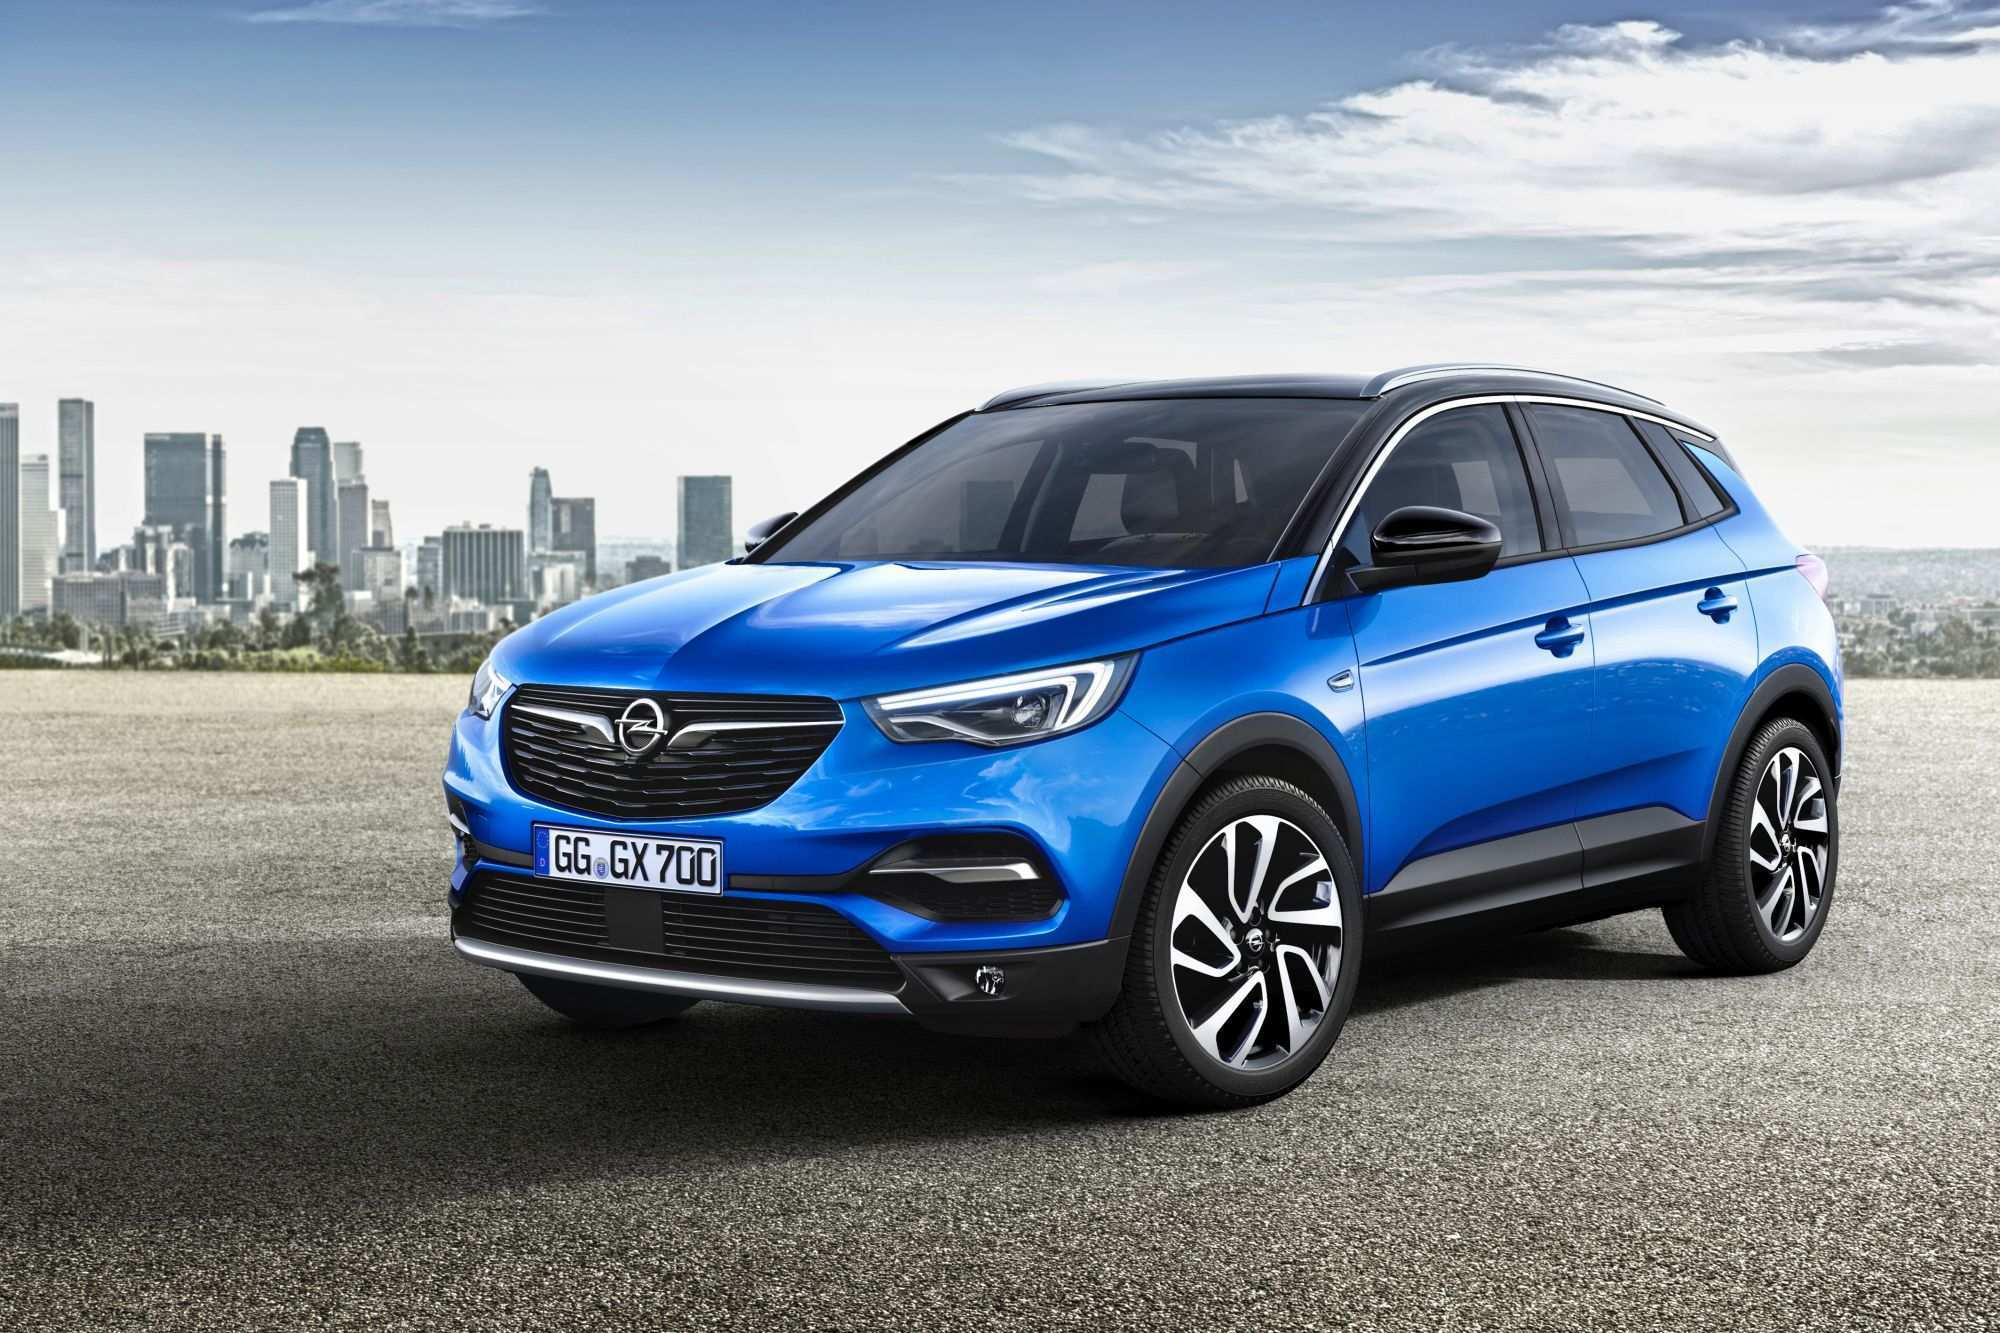 63 New Opel Corsa Suv 2020 Pricing